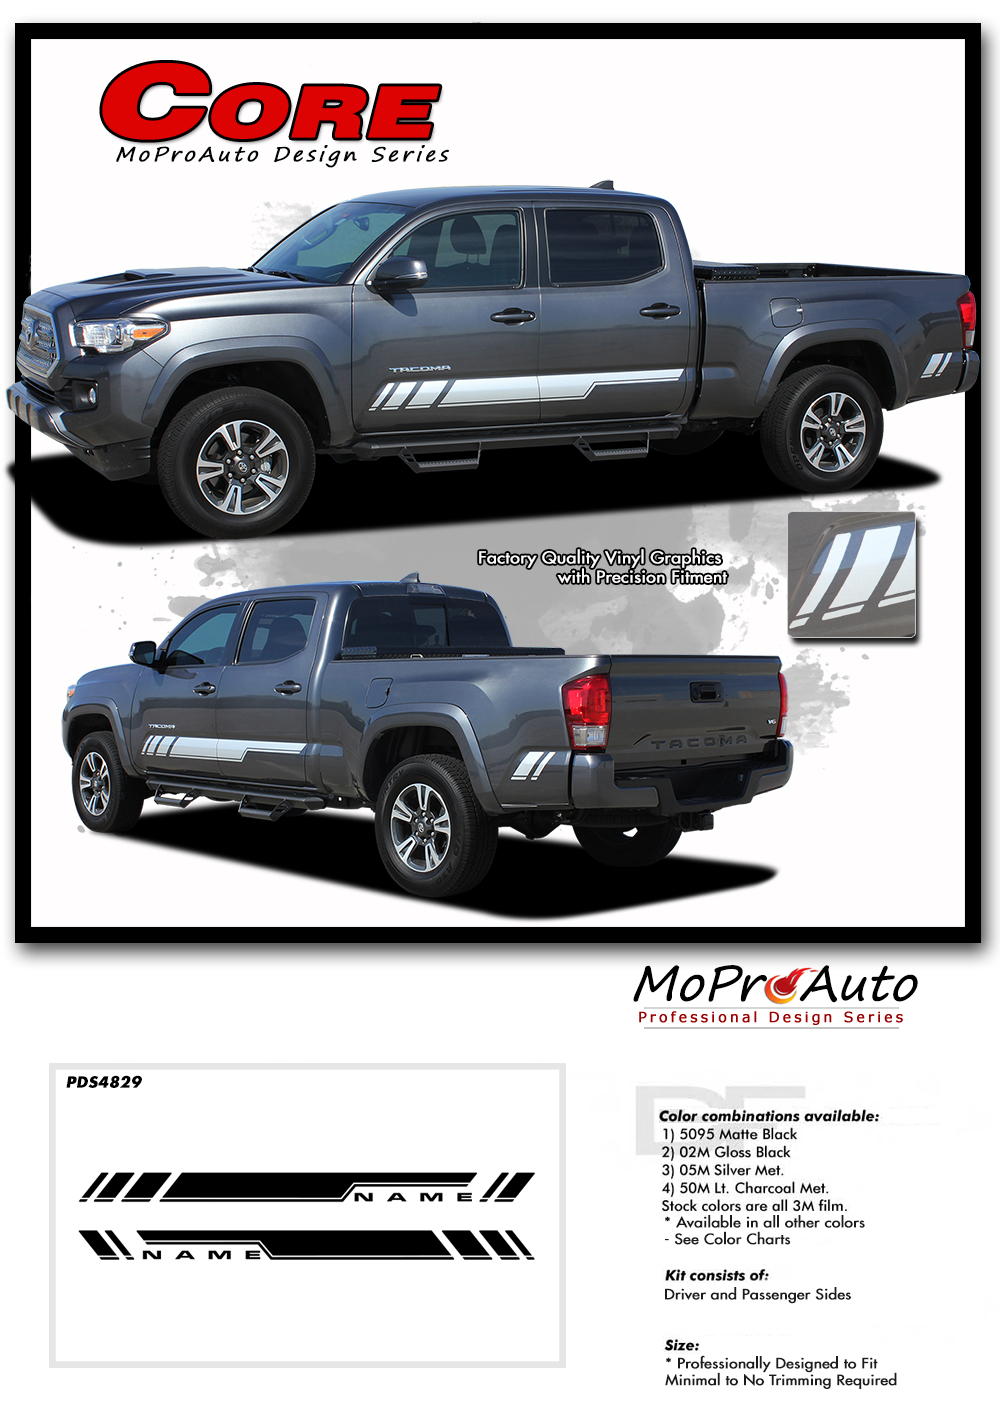 2015 2016 2017 2018 CORE : Toyota Tacoma Truck TRD Sport Pro - MoProAuto Pro Design Series Vinyl Graphics, Stripes and Decals Kit